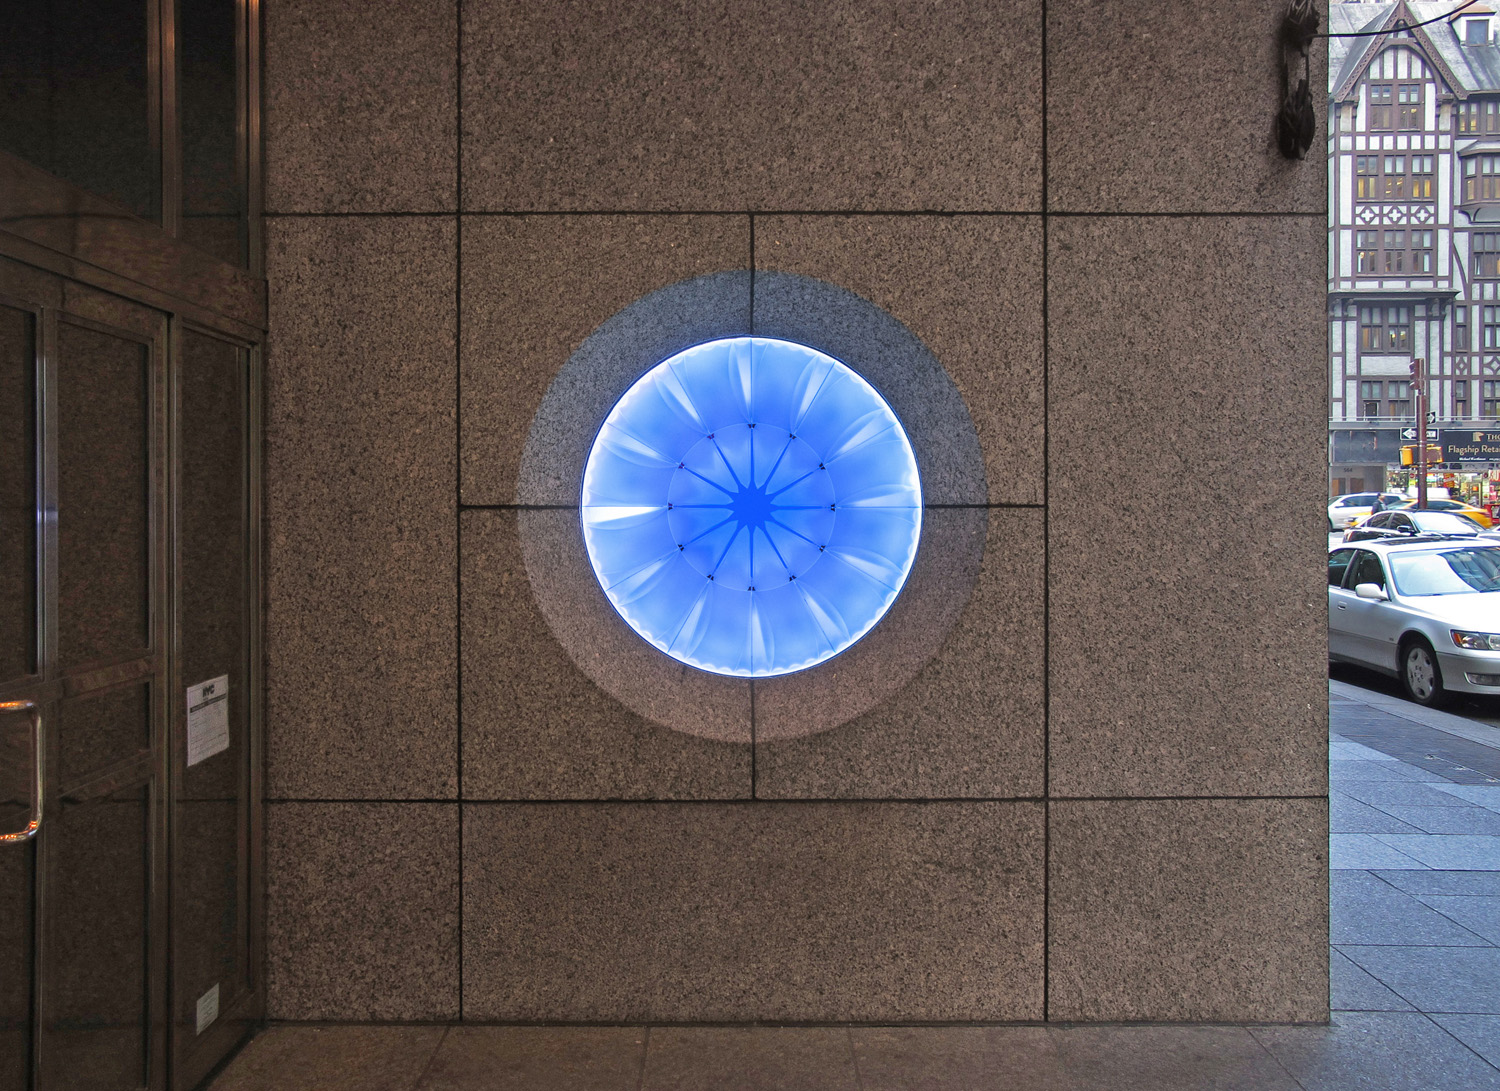 Voyage   2015. Cast glass, plate glass, aluminum, stainless steel, LED lights. 45 inch diameter face.555 Fifth Avenue, New York, NY